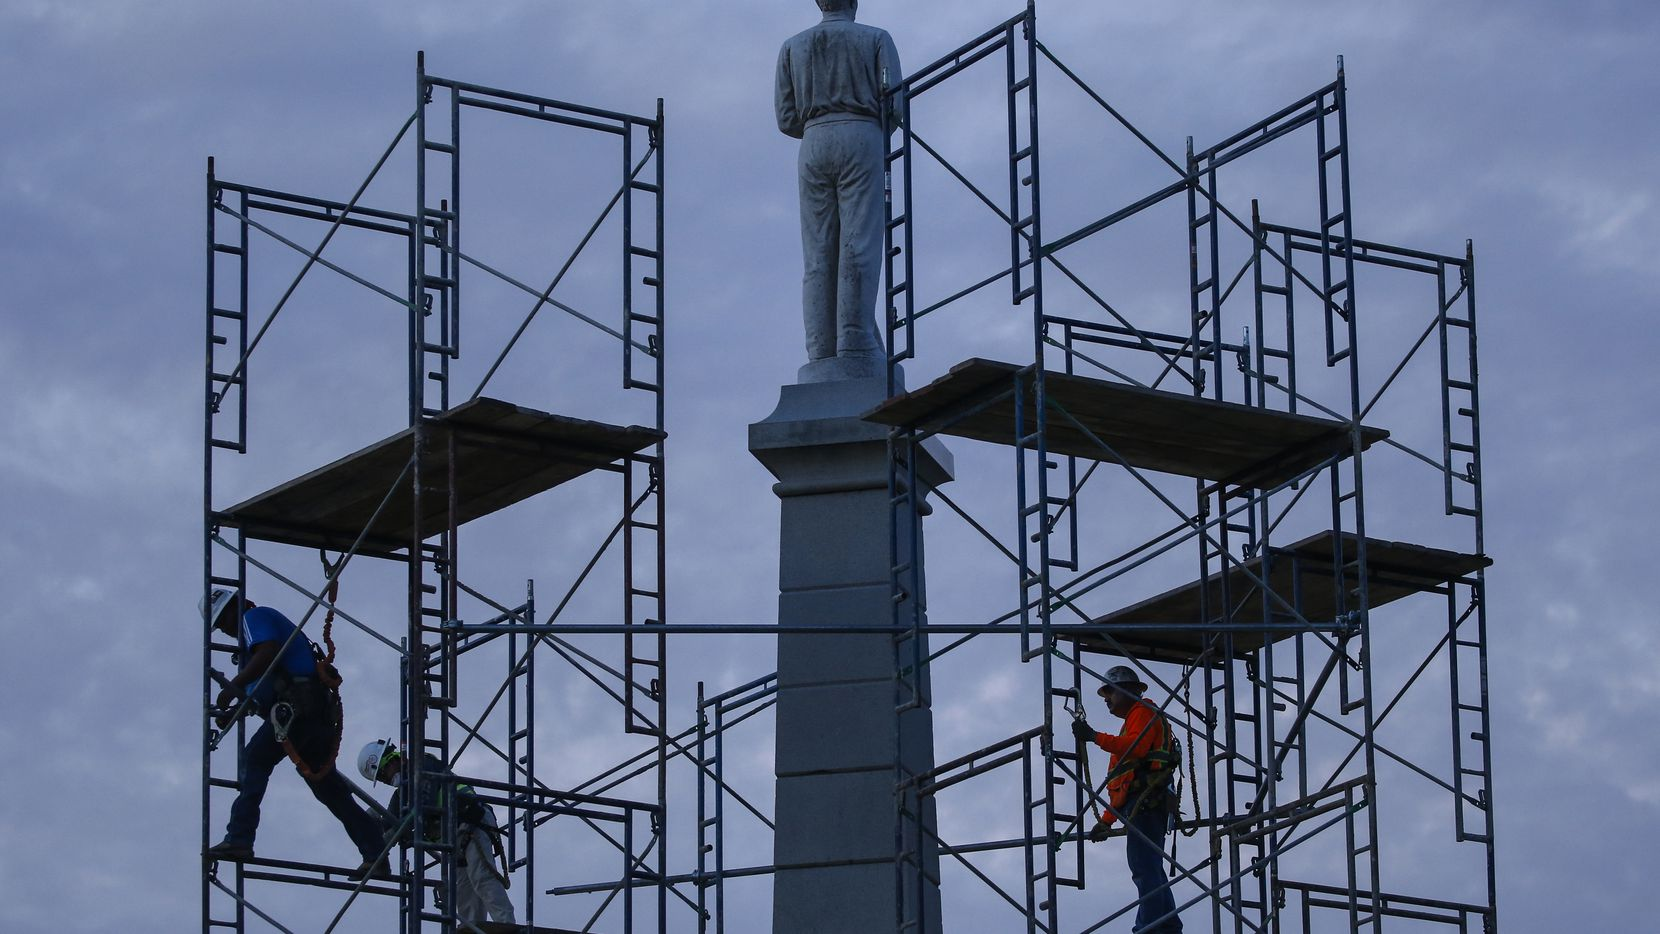 Construction crews work to remove The Confederate War Memorial at Pioneer Park on Wednesday, June 24, 2020 in Dallas. A state appeals court has granted a request from the City of Dallas to immediately remove the statue from the park. The city had planned to remove the statue in February 2019, but was sued by a group called Return to Lee Park, led by former City Council candidate Warren Johnson, to keep the 65-foot obelisk in place. (Ryan Michalesko/The Dallas Morning News)